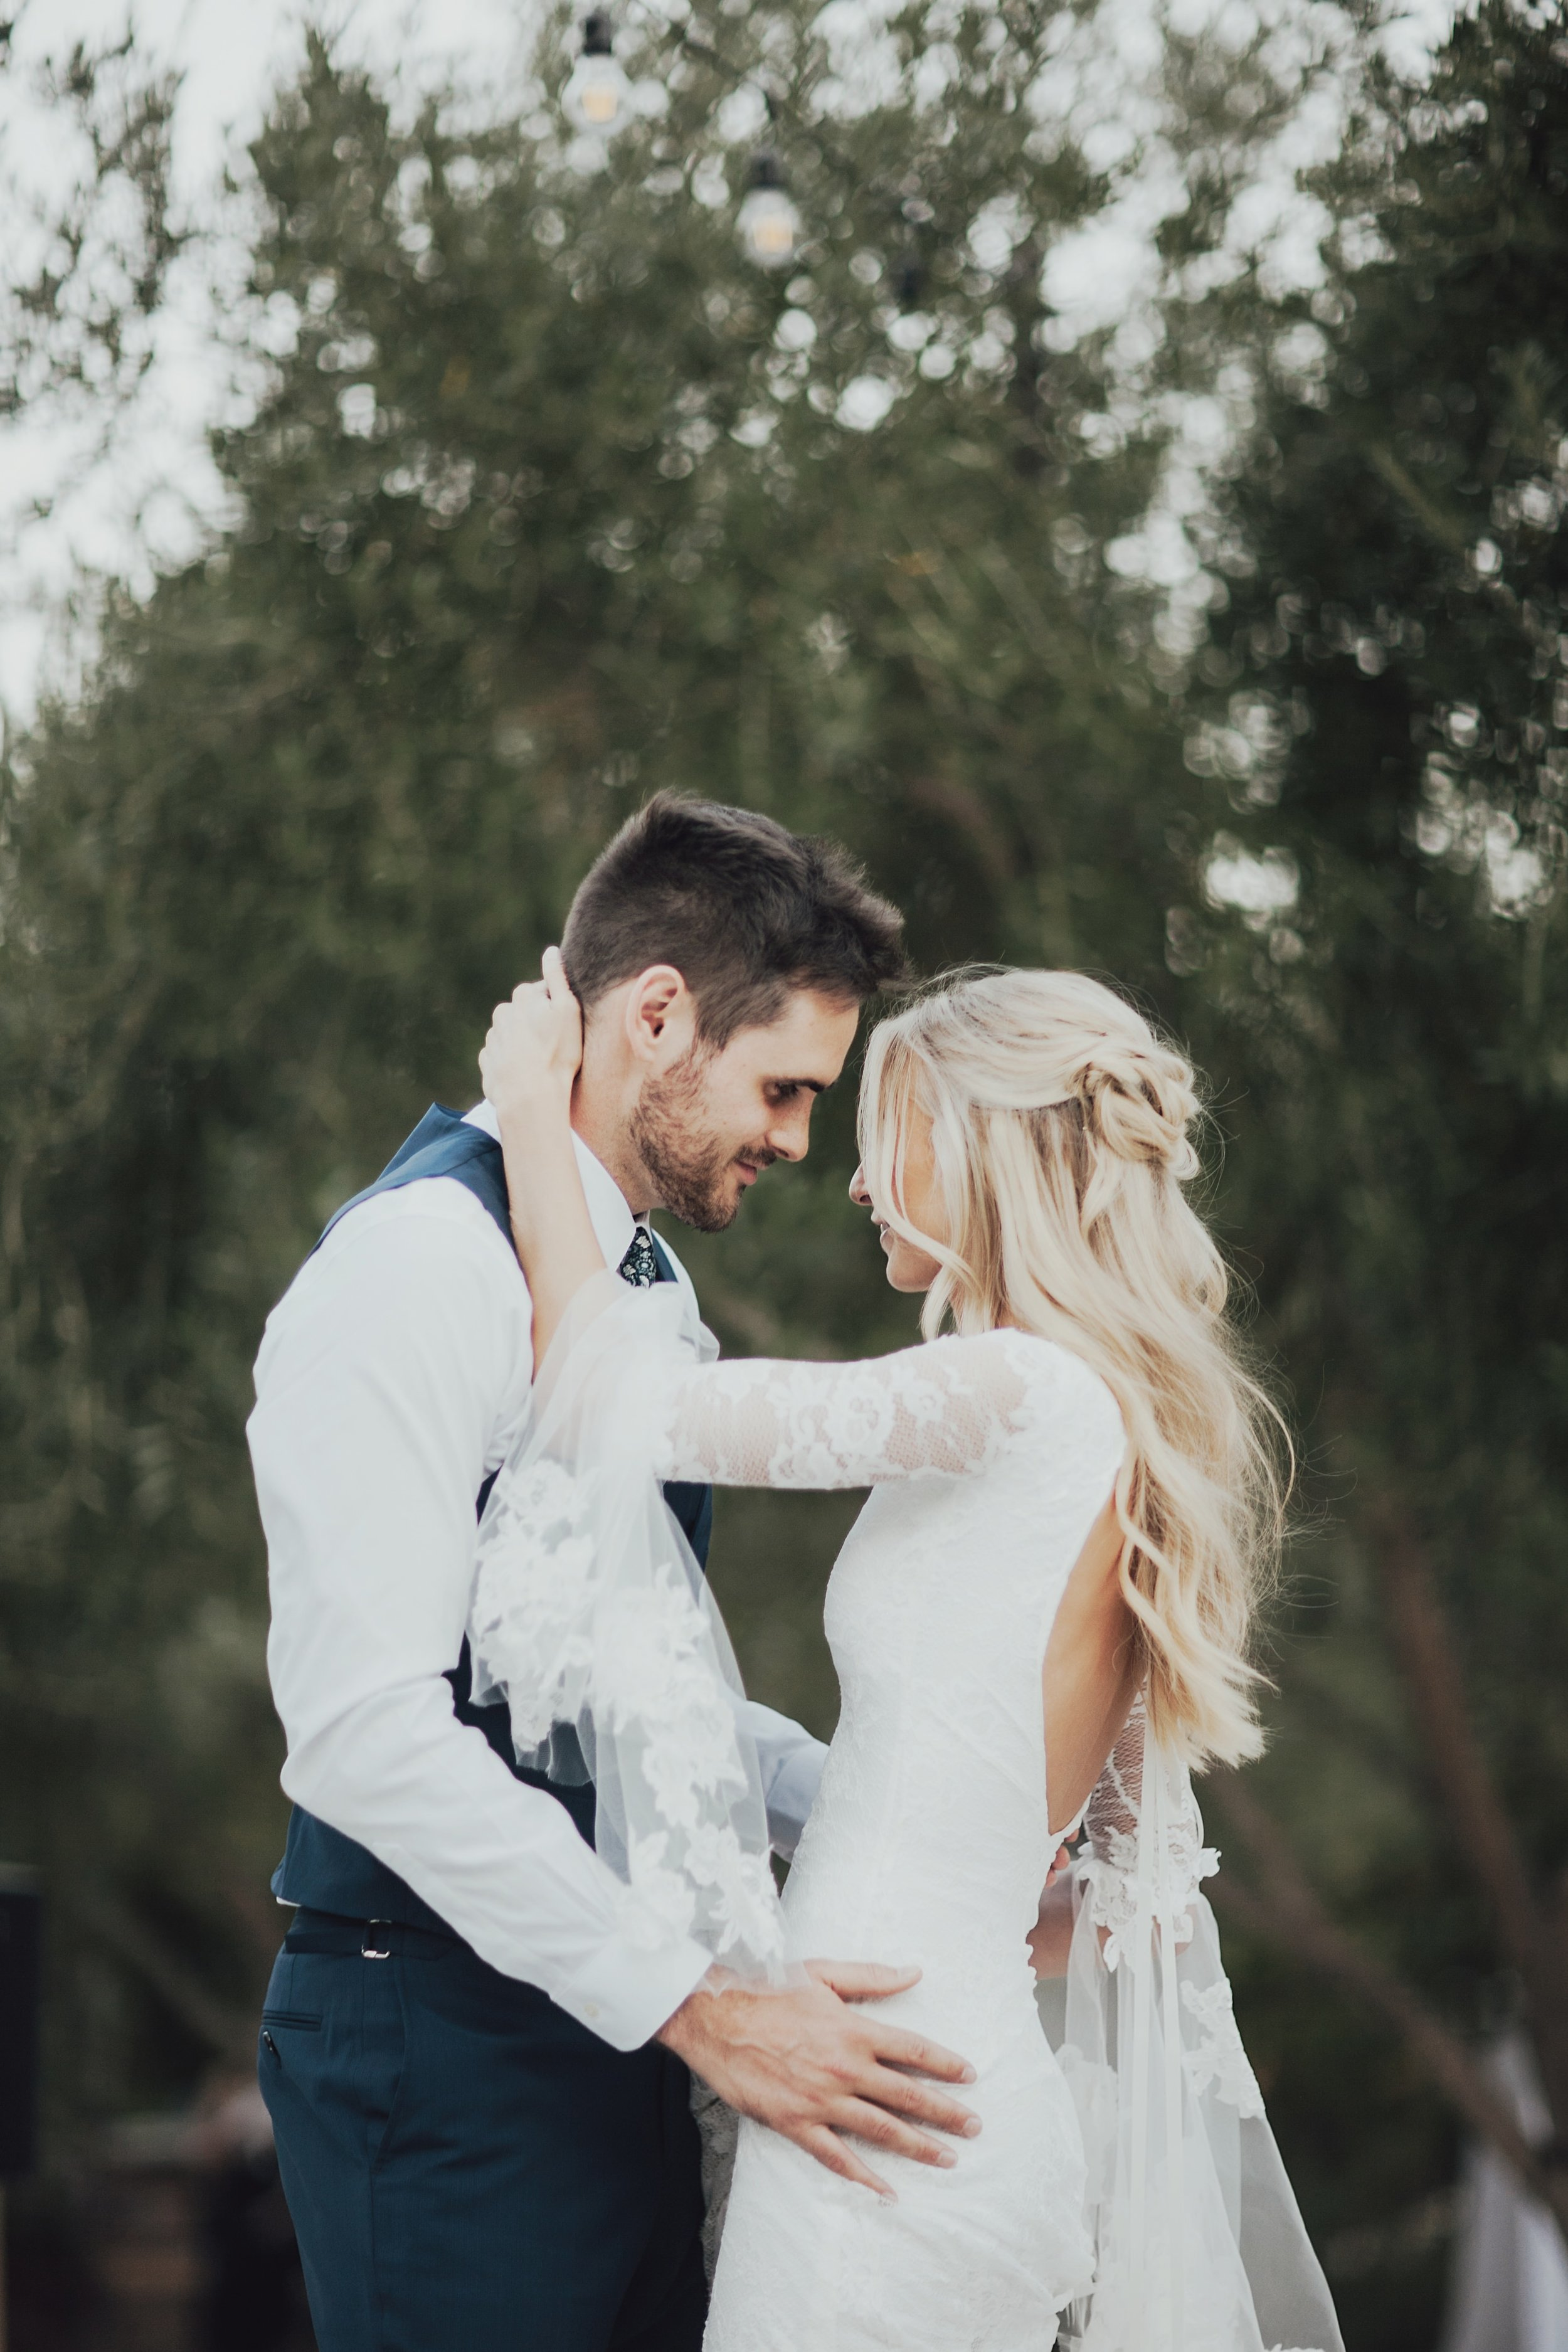 soft natural lighting during the first dance